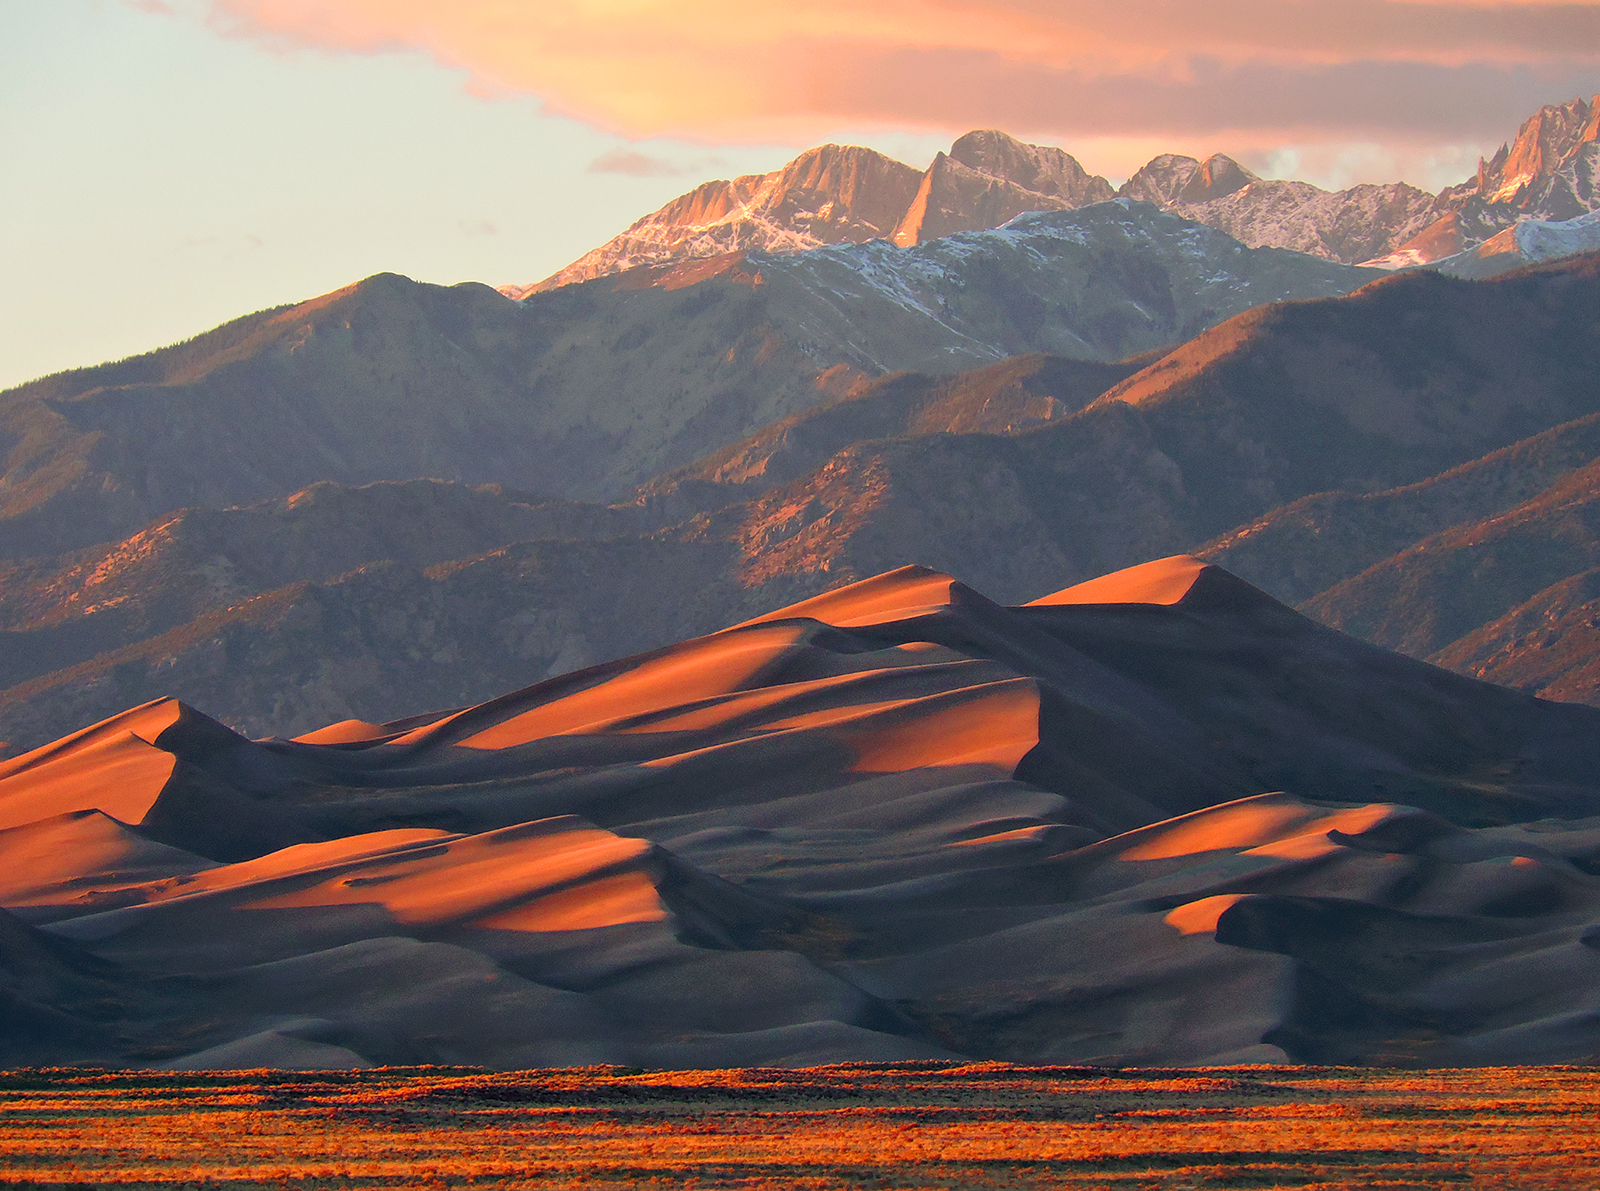 Sunset light on dunes and snow-capped mountain